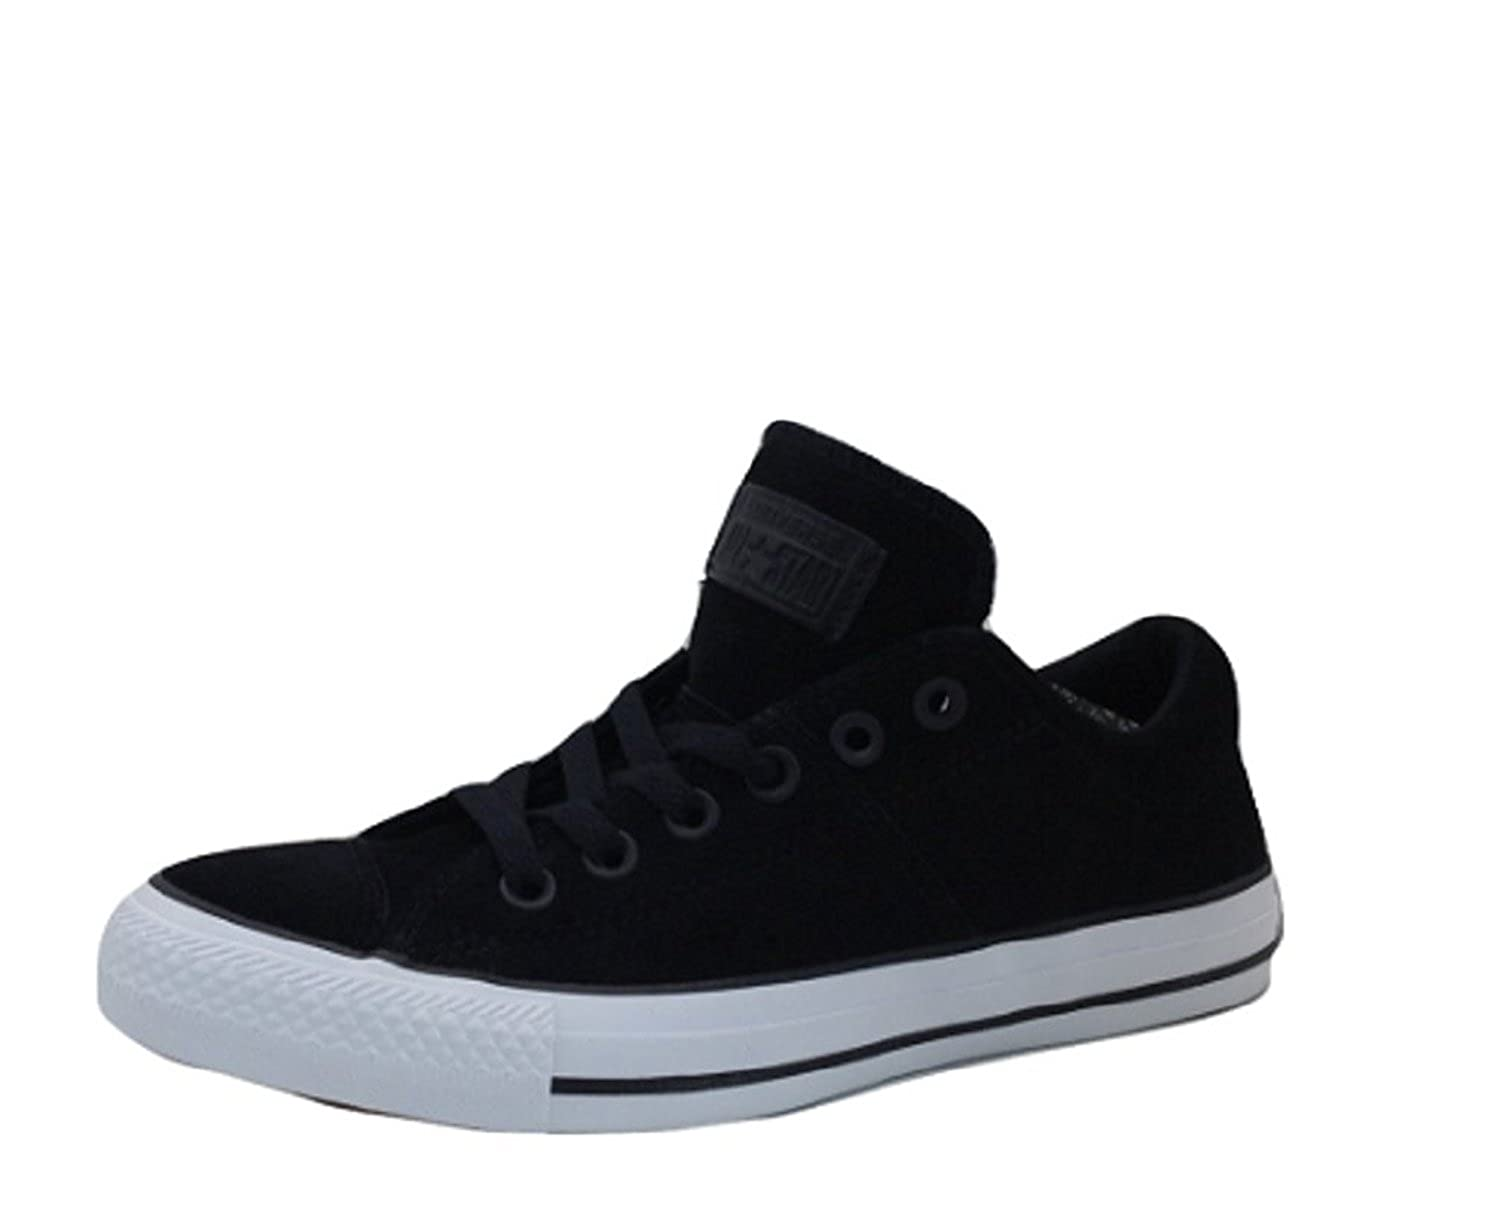 Converse Chuck Taylor All Star Madison Ox damen